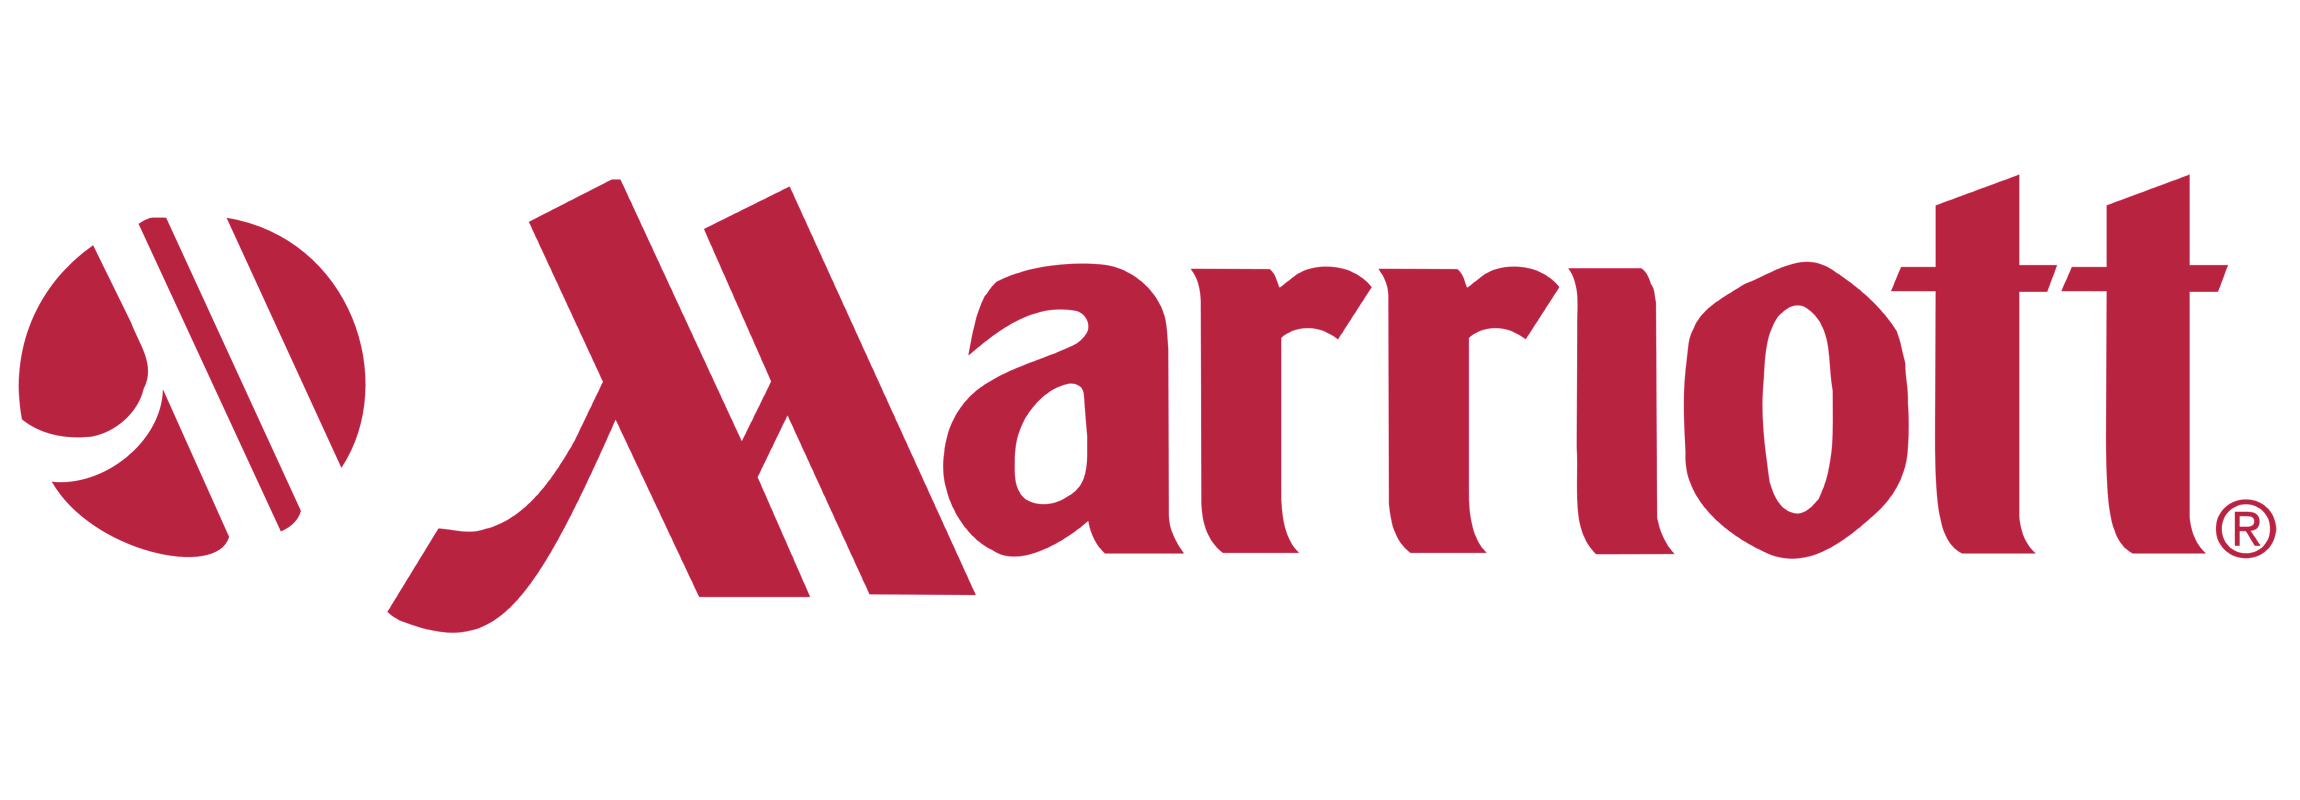 Marriott Logo Marriott Symbol Meaning History And Evolution